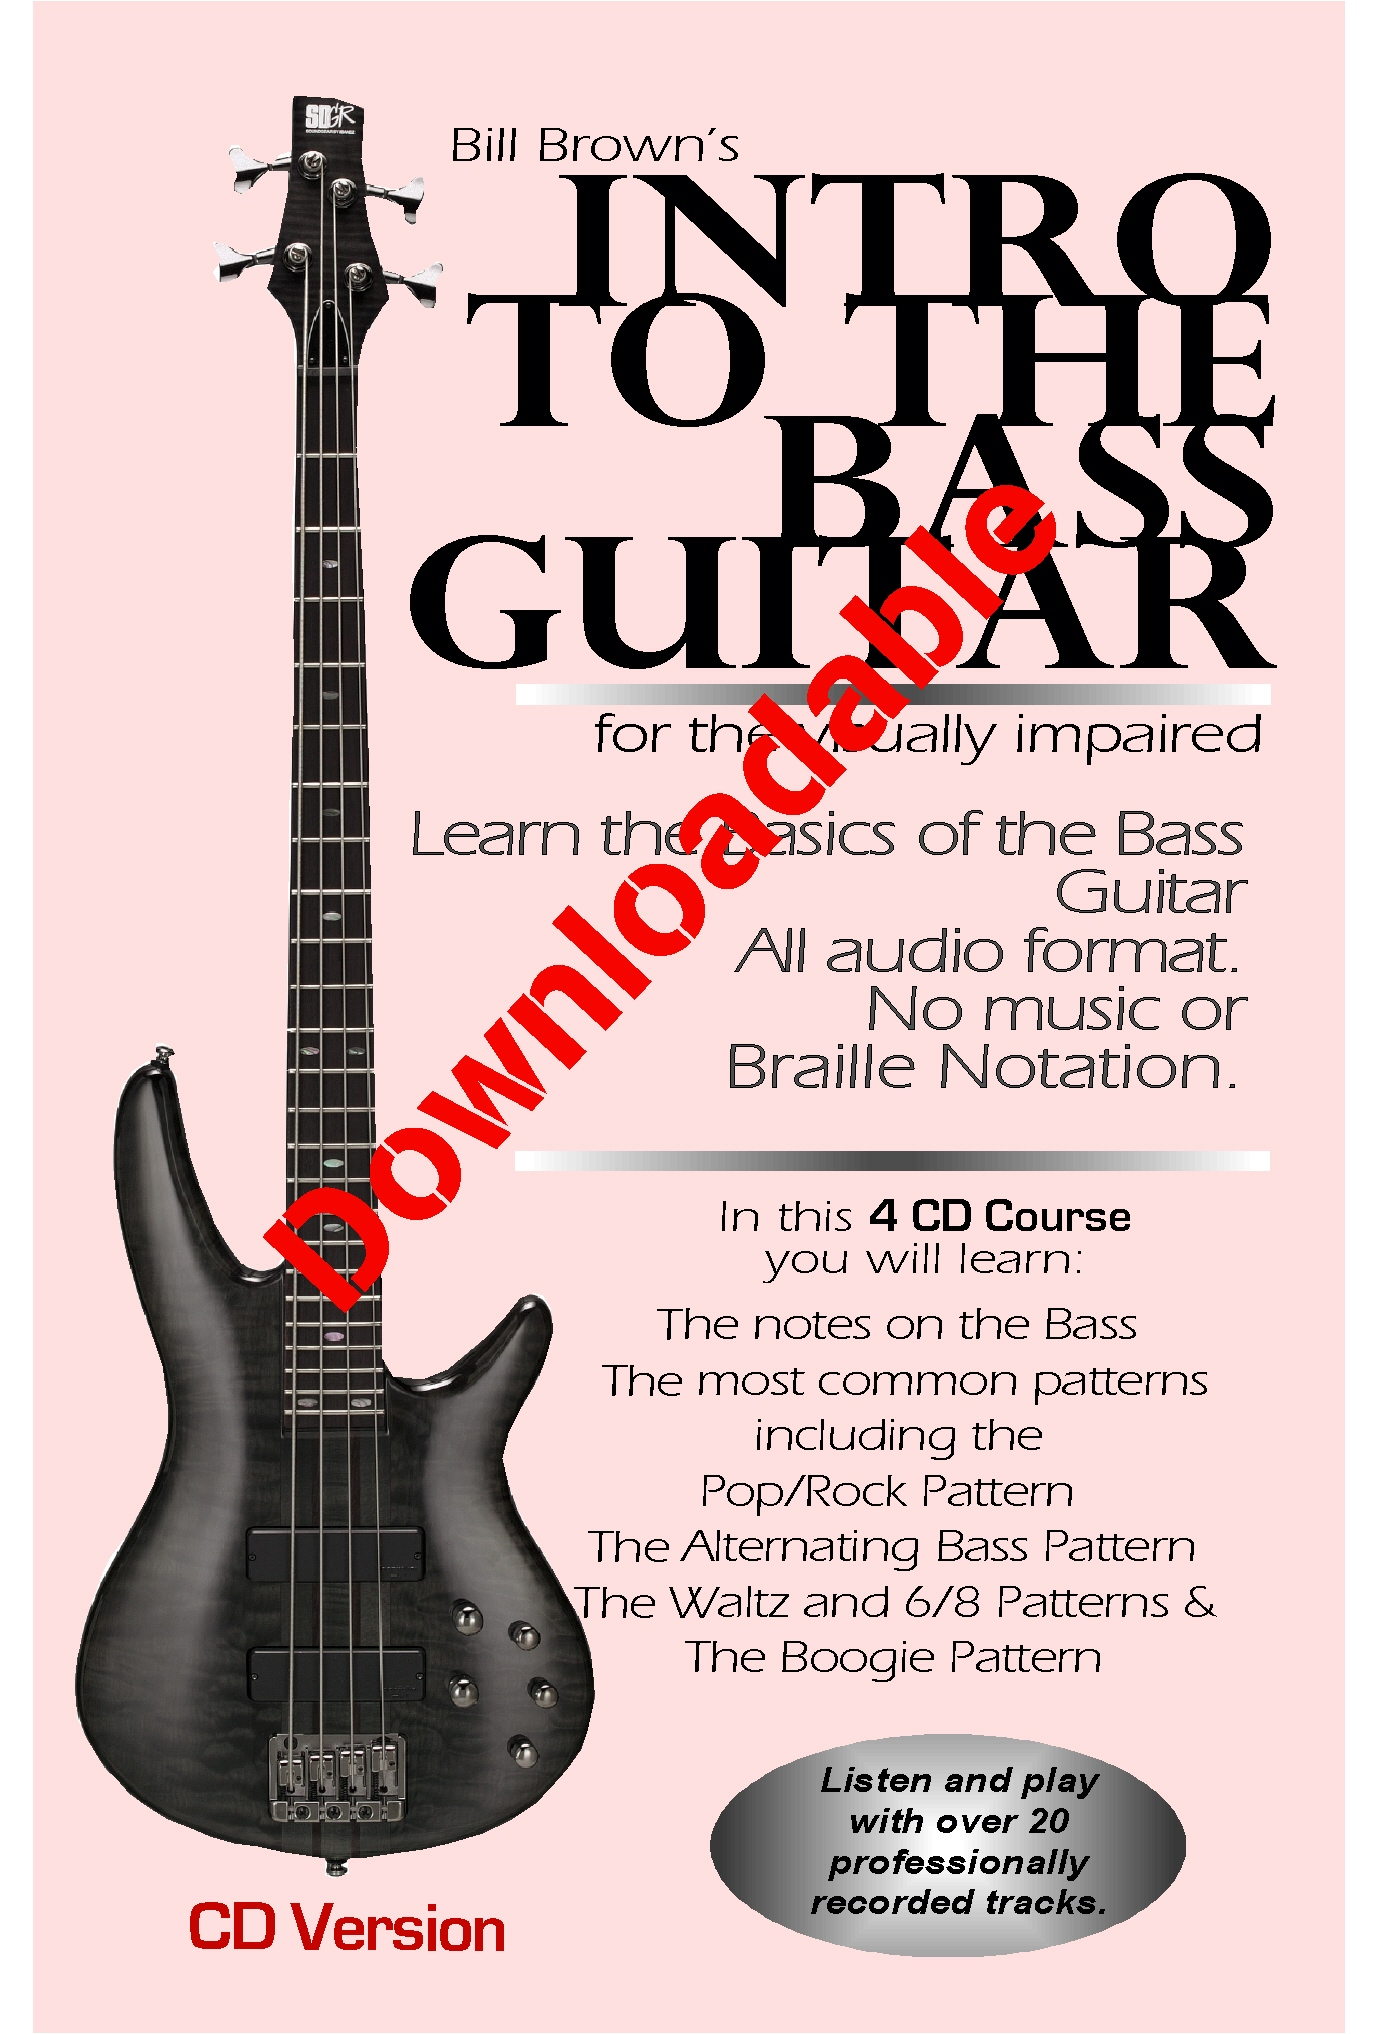 Intro to the Bass Guitar for the Visually Impaired (Downloadable)